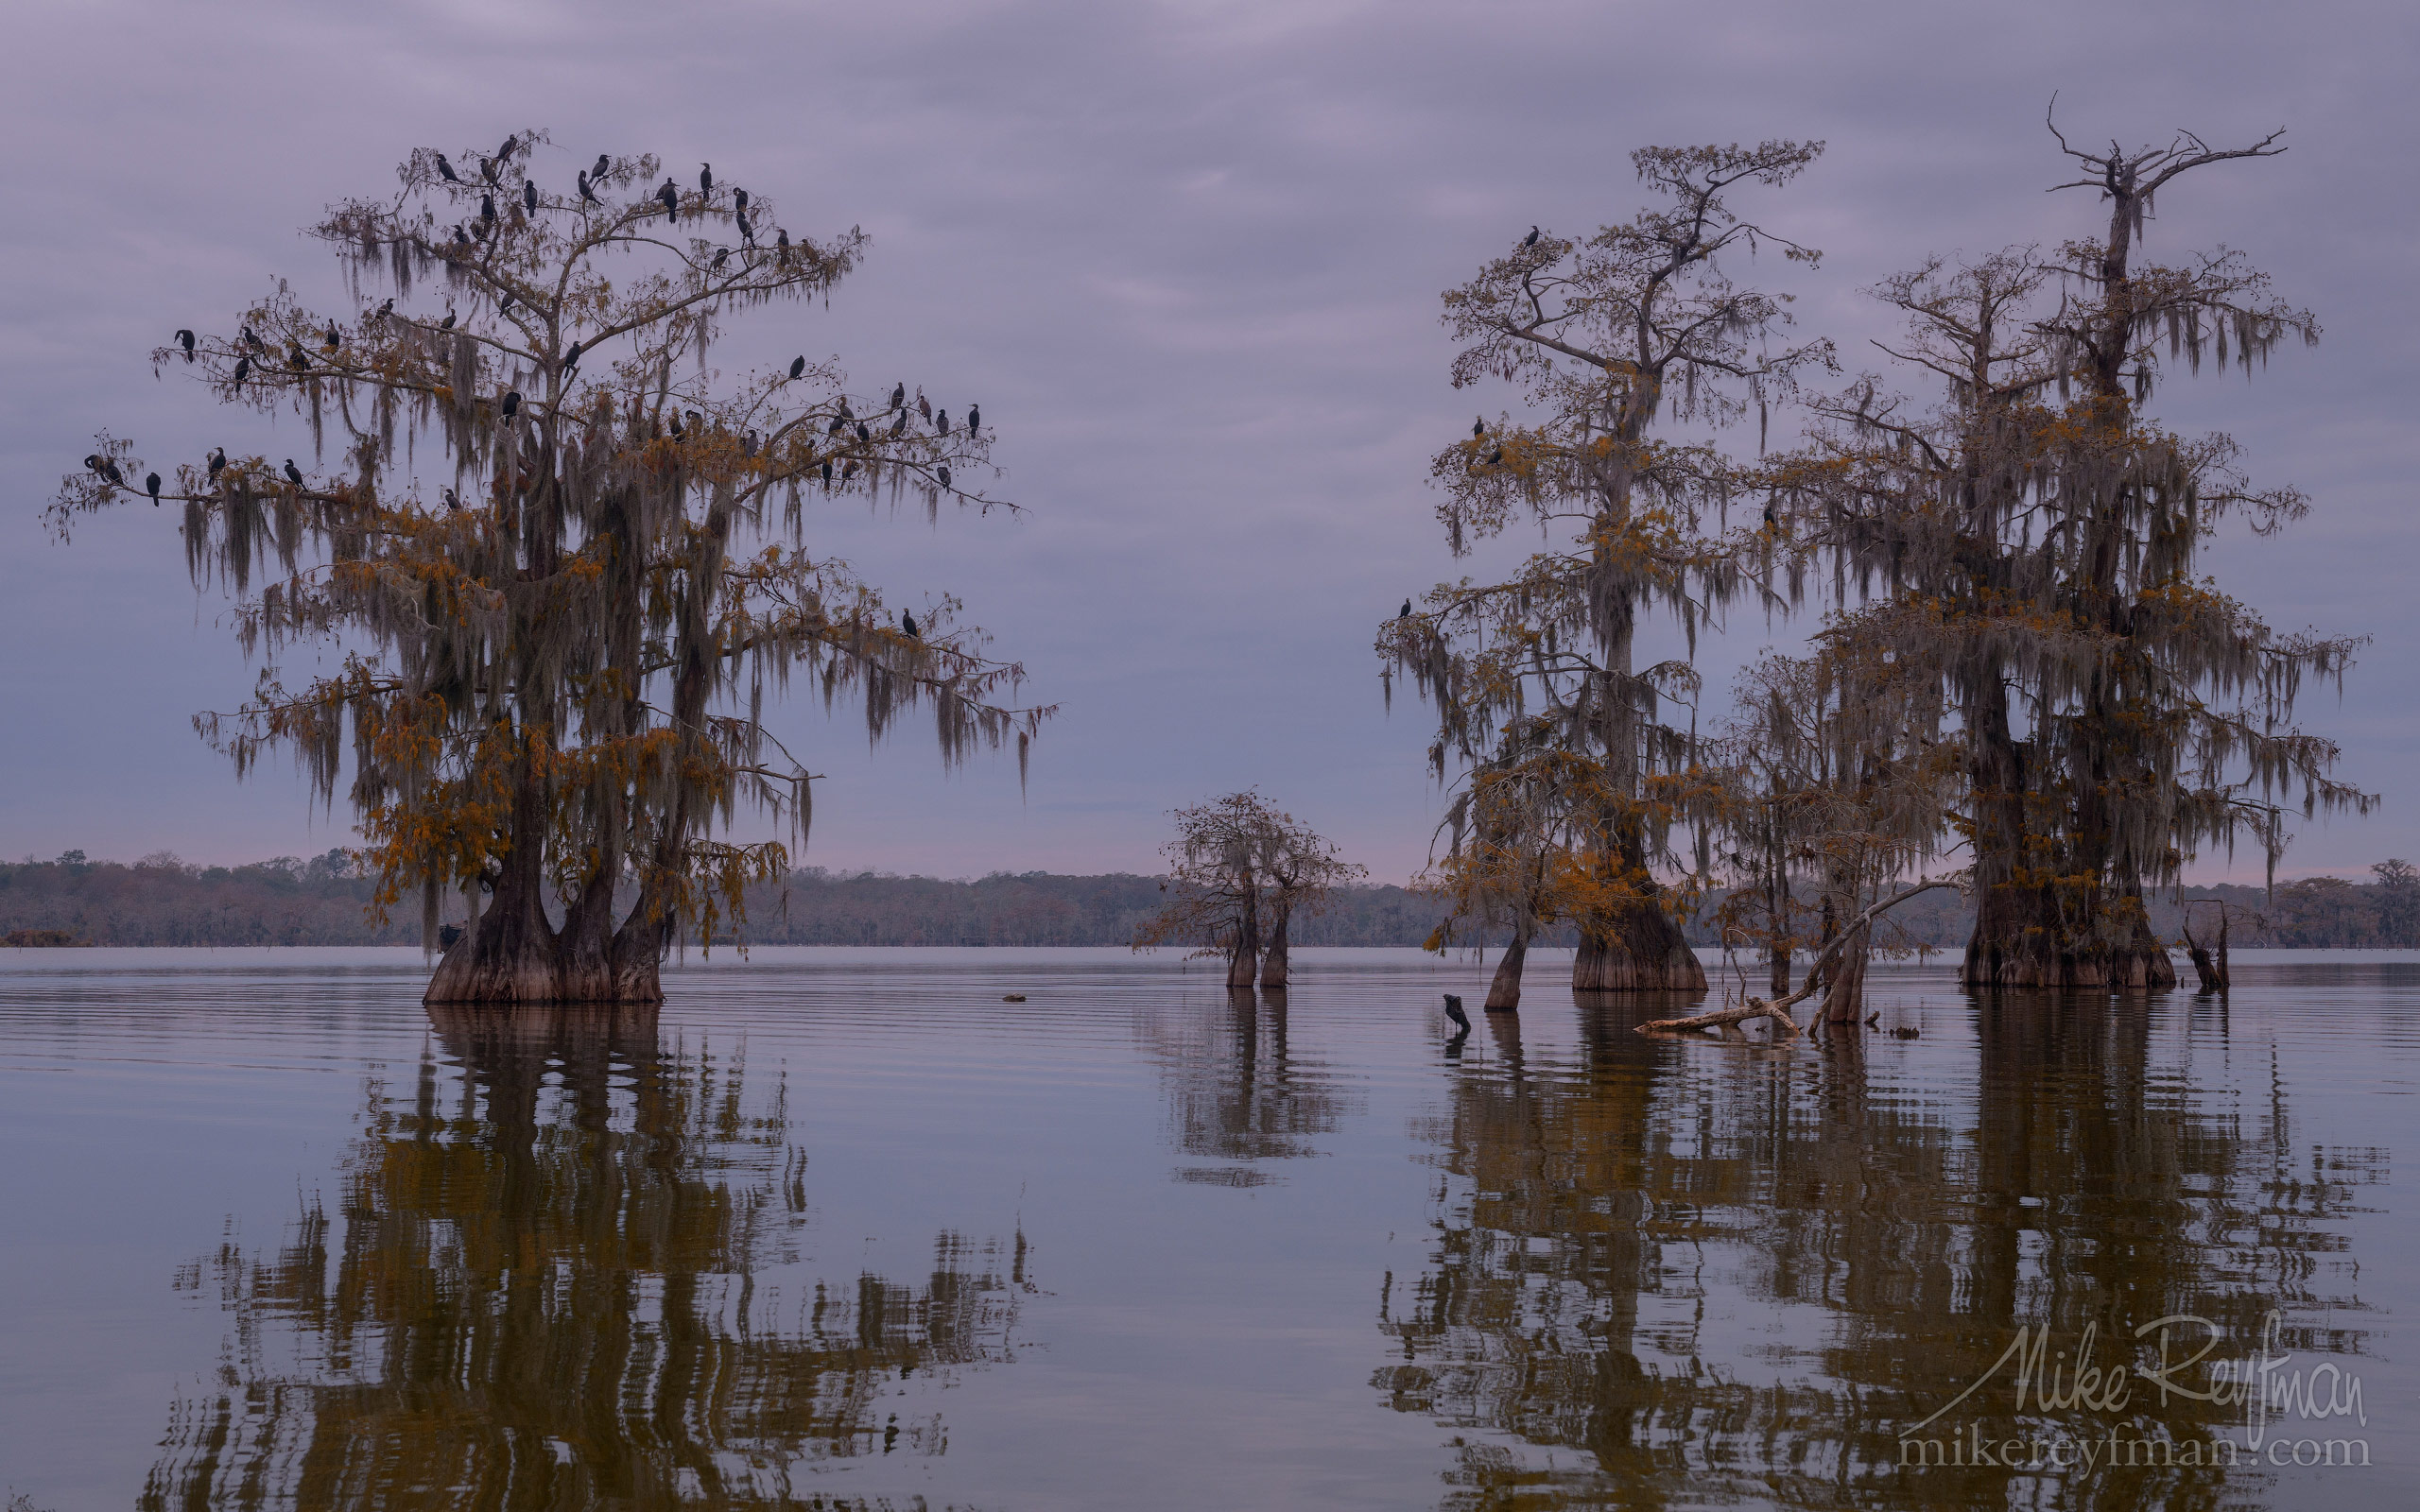 A flock of Double-crested Cormorants on the Bald Cypress tree. Lake Martin, Louisiana, US 021-LT1-50A2647.jpg - Bold Cypress and Tupelo Trees in the swamps of Atchafalaya River Basin. Caddo, Martin and Fousse Lakes. Texas/Louisiana, USA. - Mike Reyfman Photography